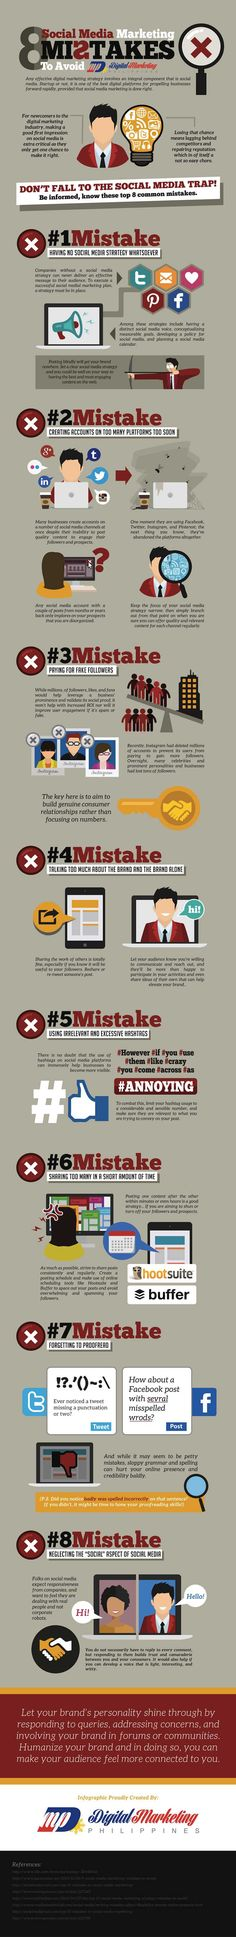 Social Media Marketing new marketers or business owners continue to make rookie mistakes. Choosing platforms messages carefully maximize impact.